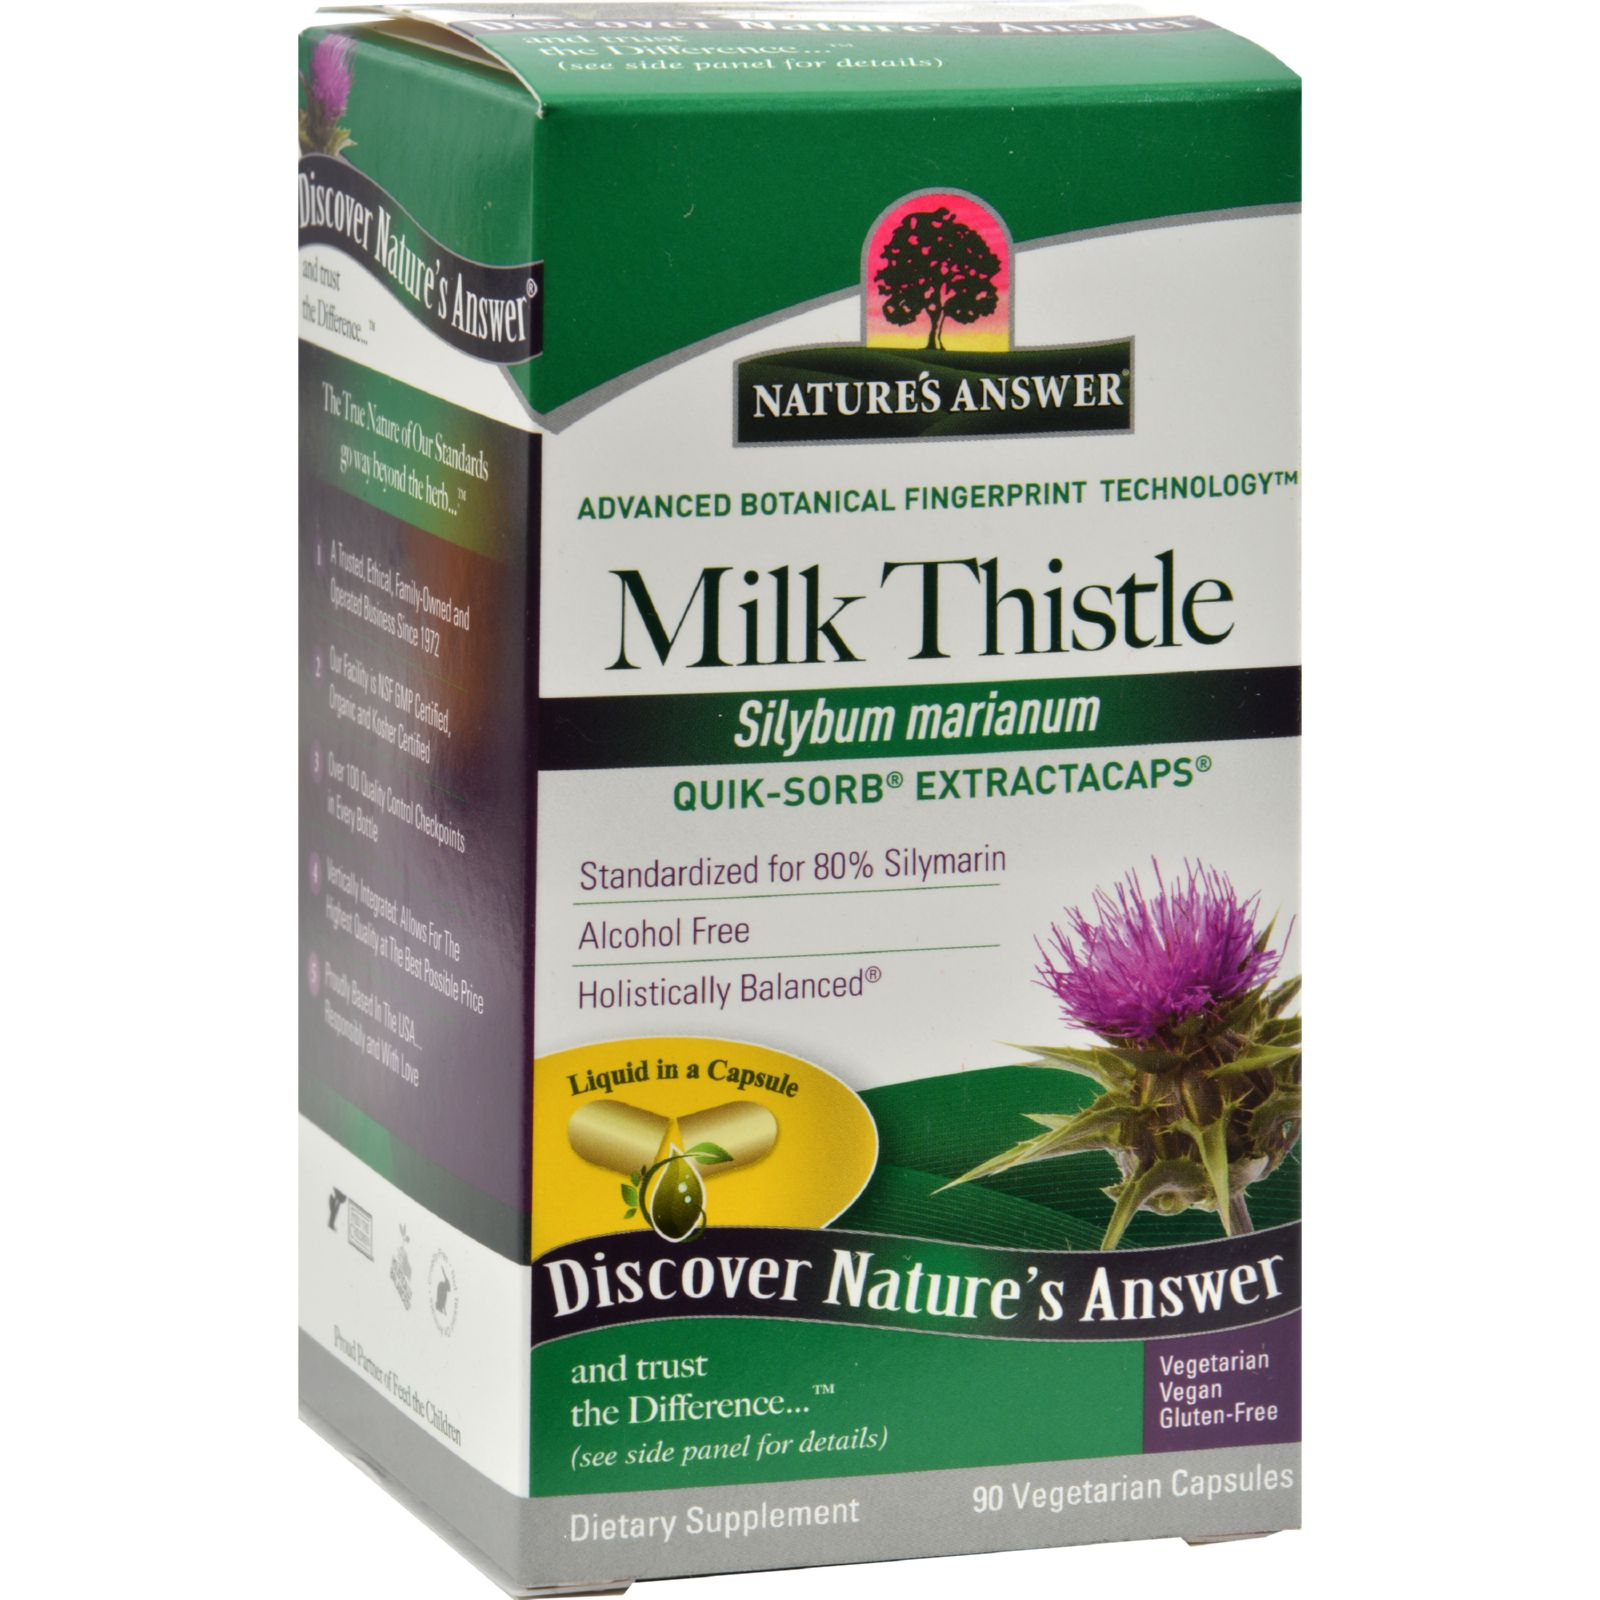 Nature's Answer Extractacaps Milk Thistle - 90 Veggie Caps